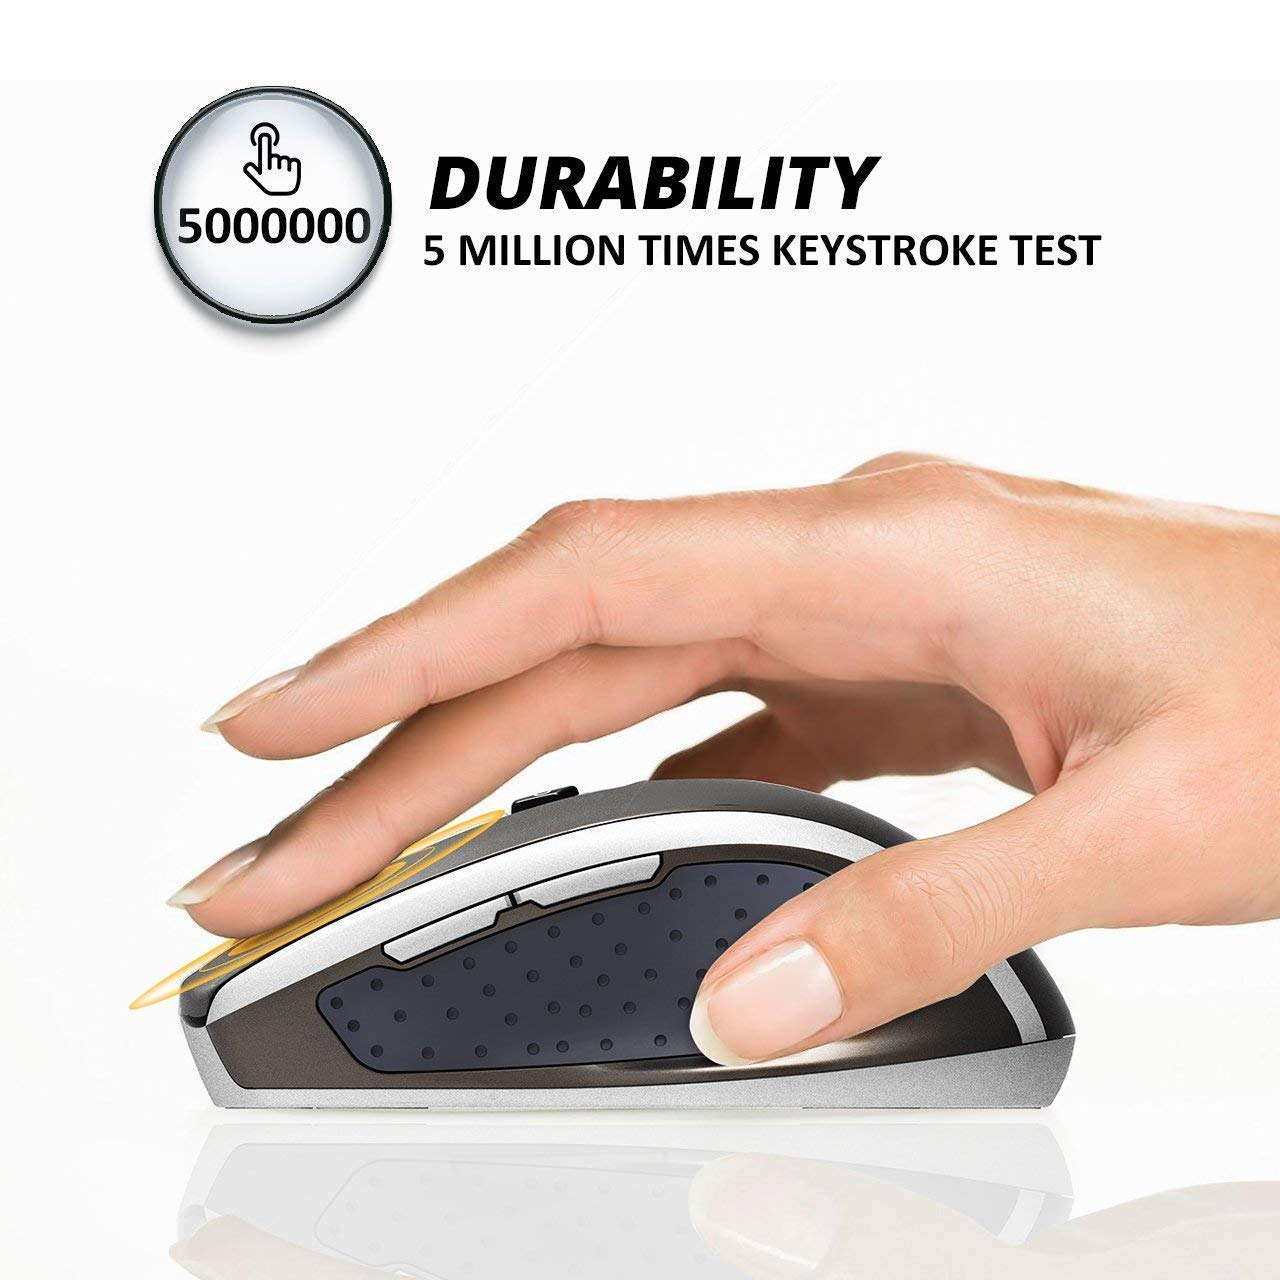 White MacBook Computer 5 Adjustable DPI Levels 6 Buttons for Notebook Laptop PC VicTsing MM057 2.4G Wireless Portable Mobile Mouse Optical Mice with USB Receiver